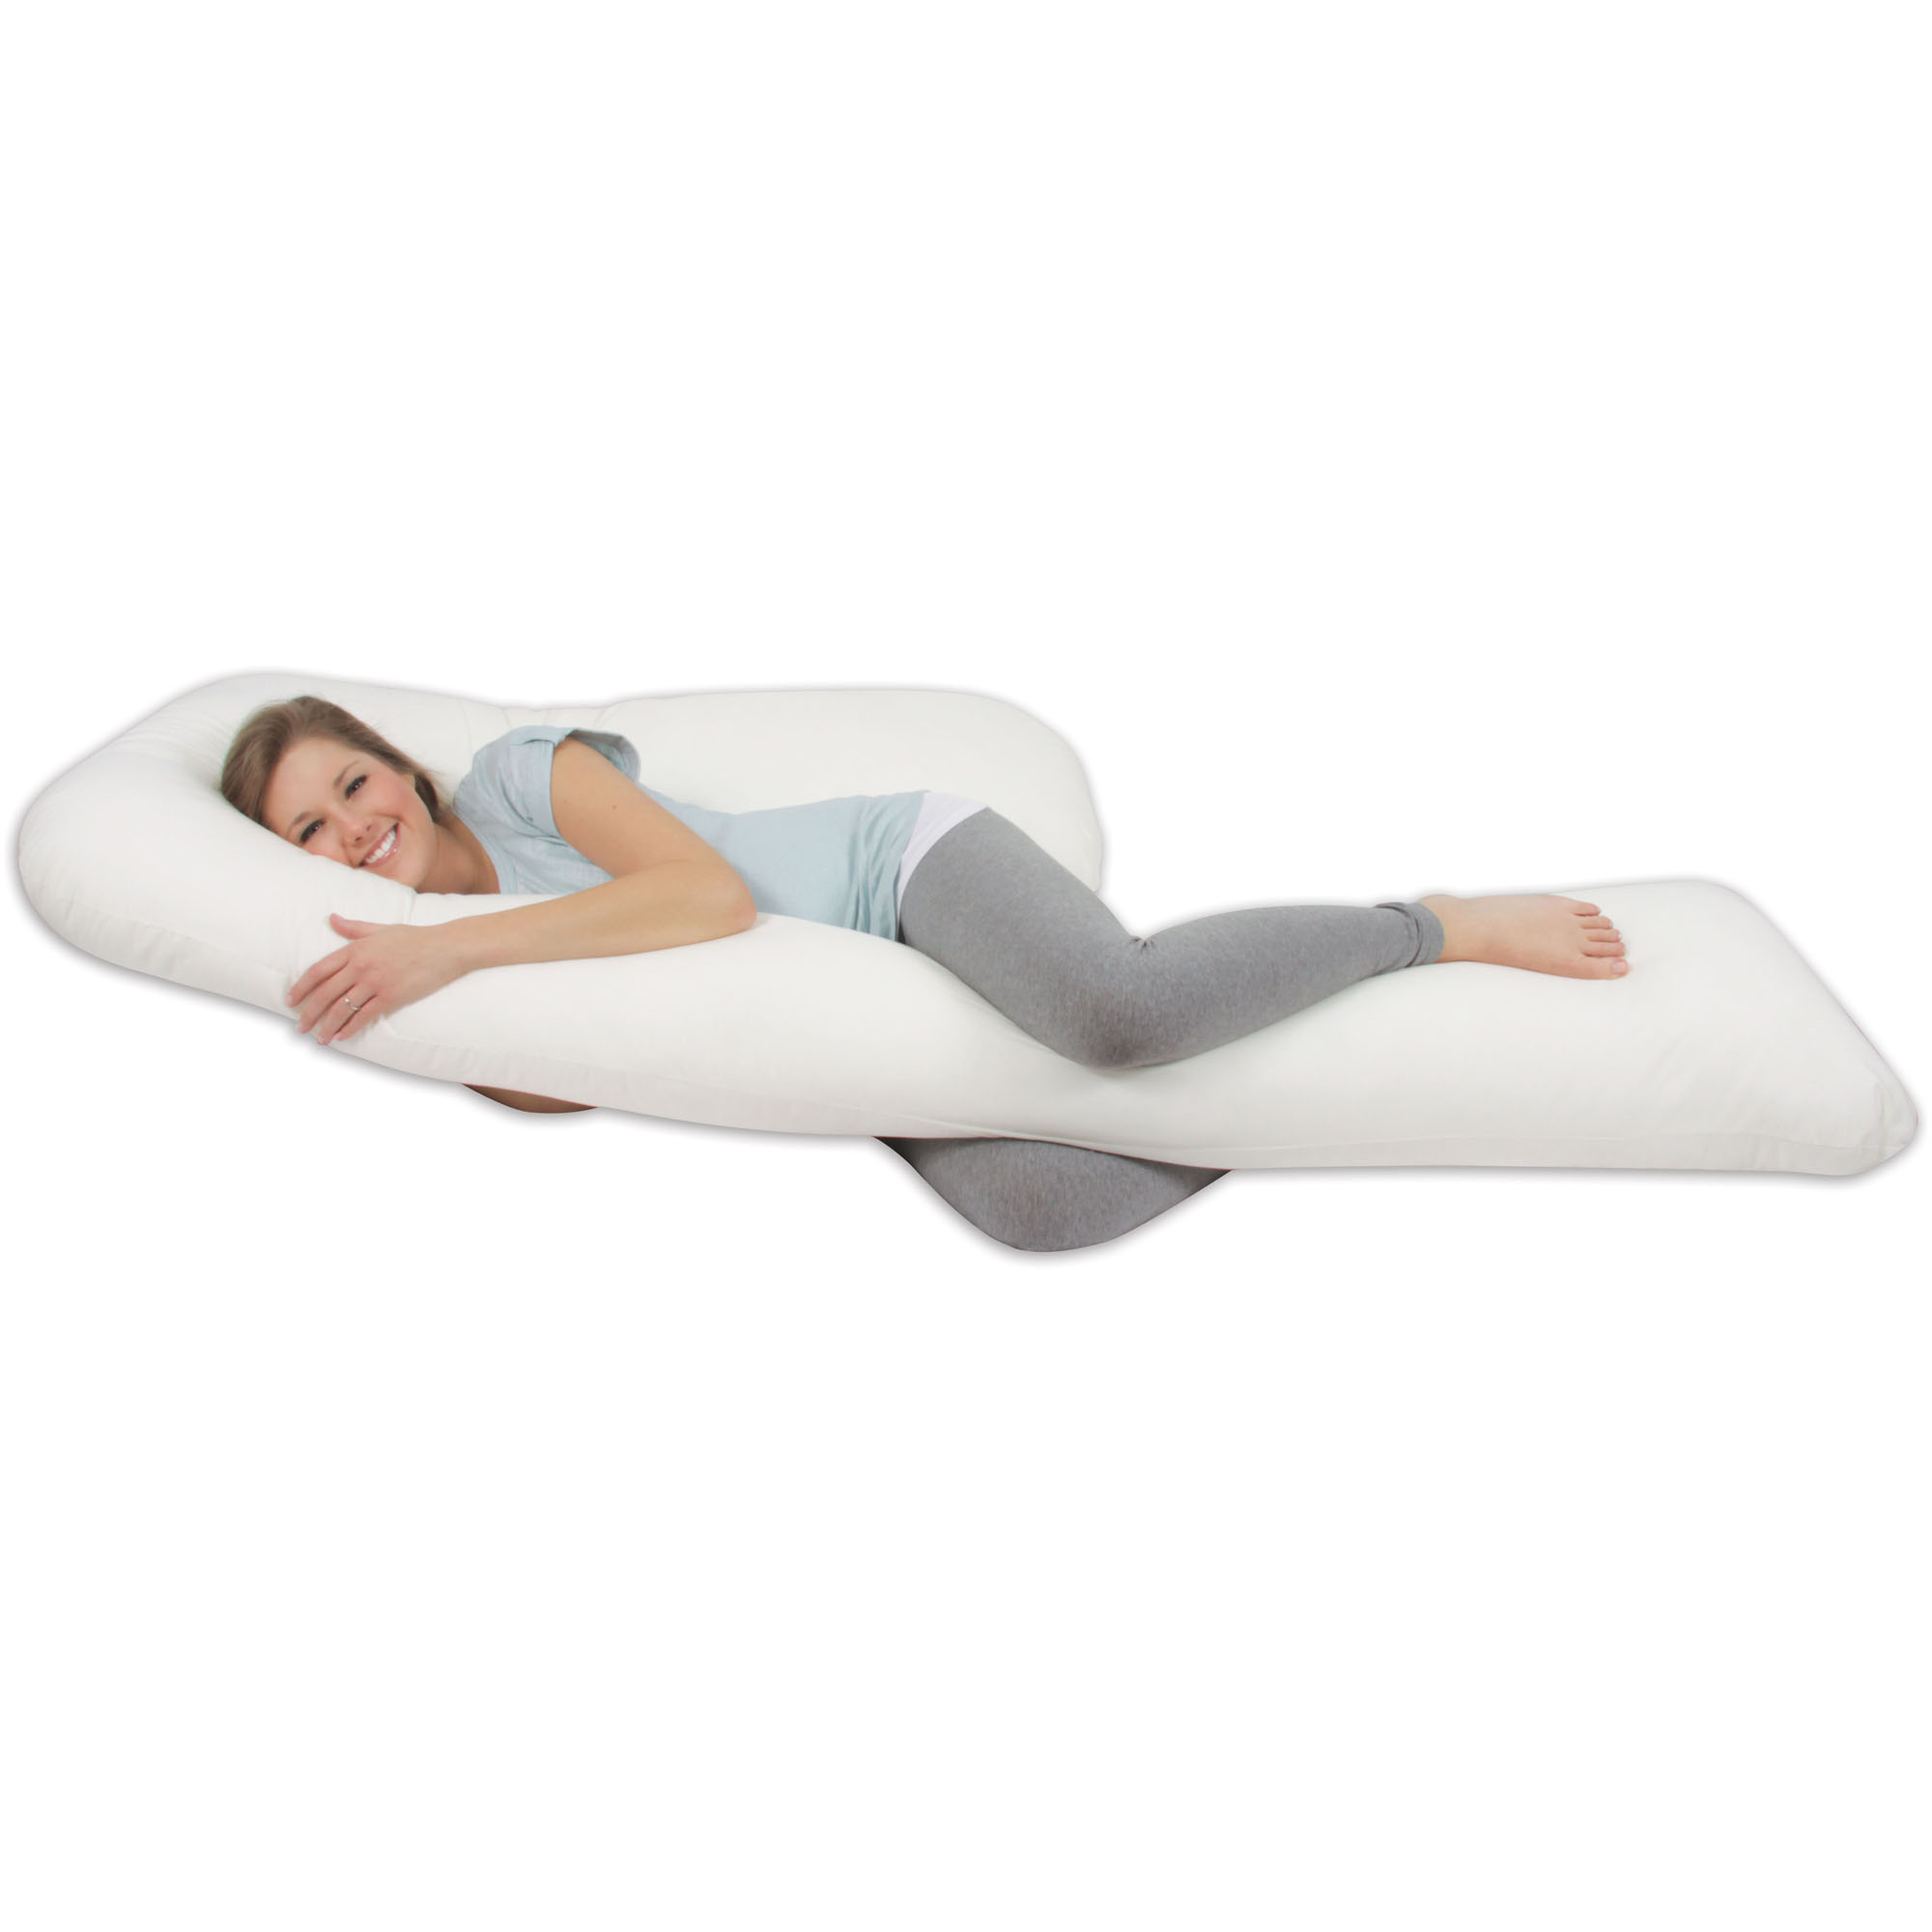 U Shaped Body Pillow Walmart. Pregnancy Pillow Walmart